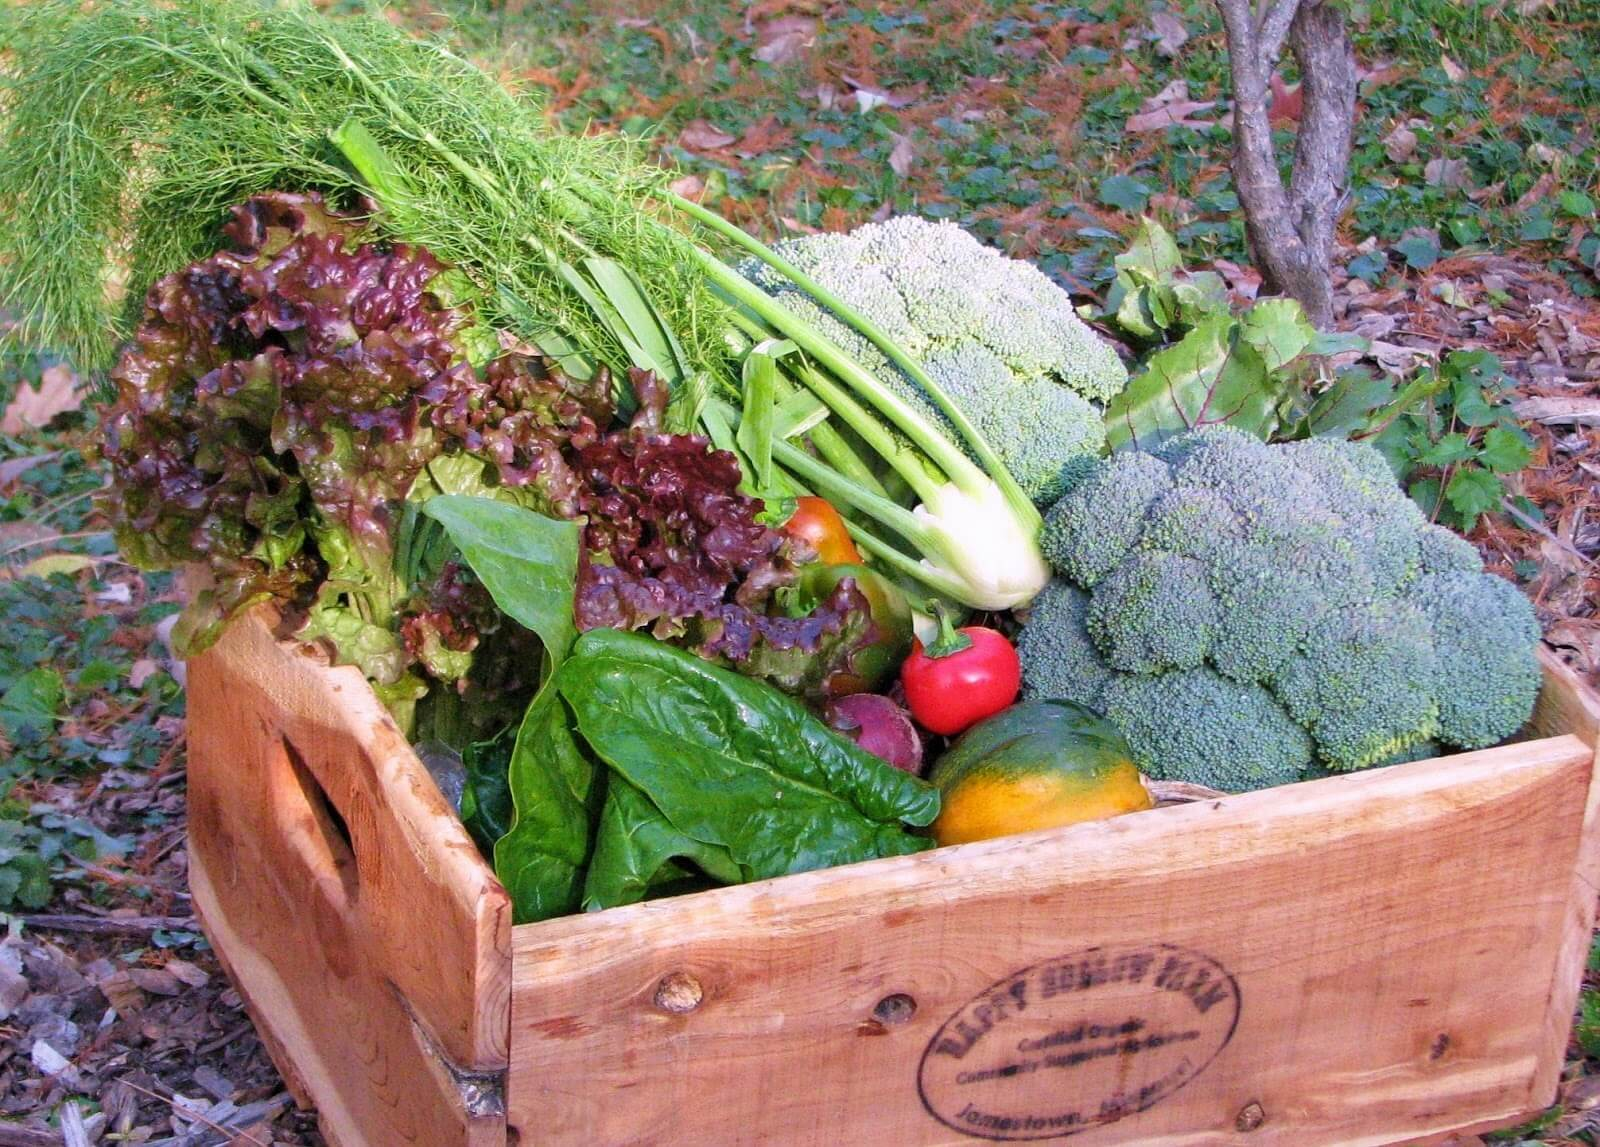 What is Community Supported Agriculture? It's an increasingly popular way to buy local, seasonal—often organic—food directly from a farmer at a great price. Here's how to find a CSA in your community.